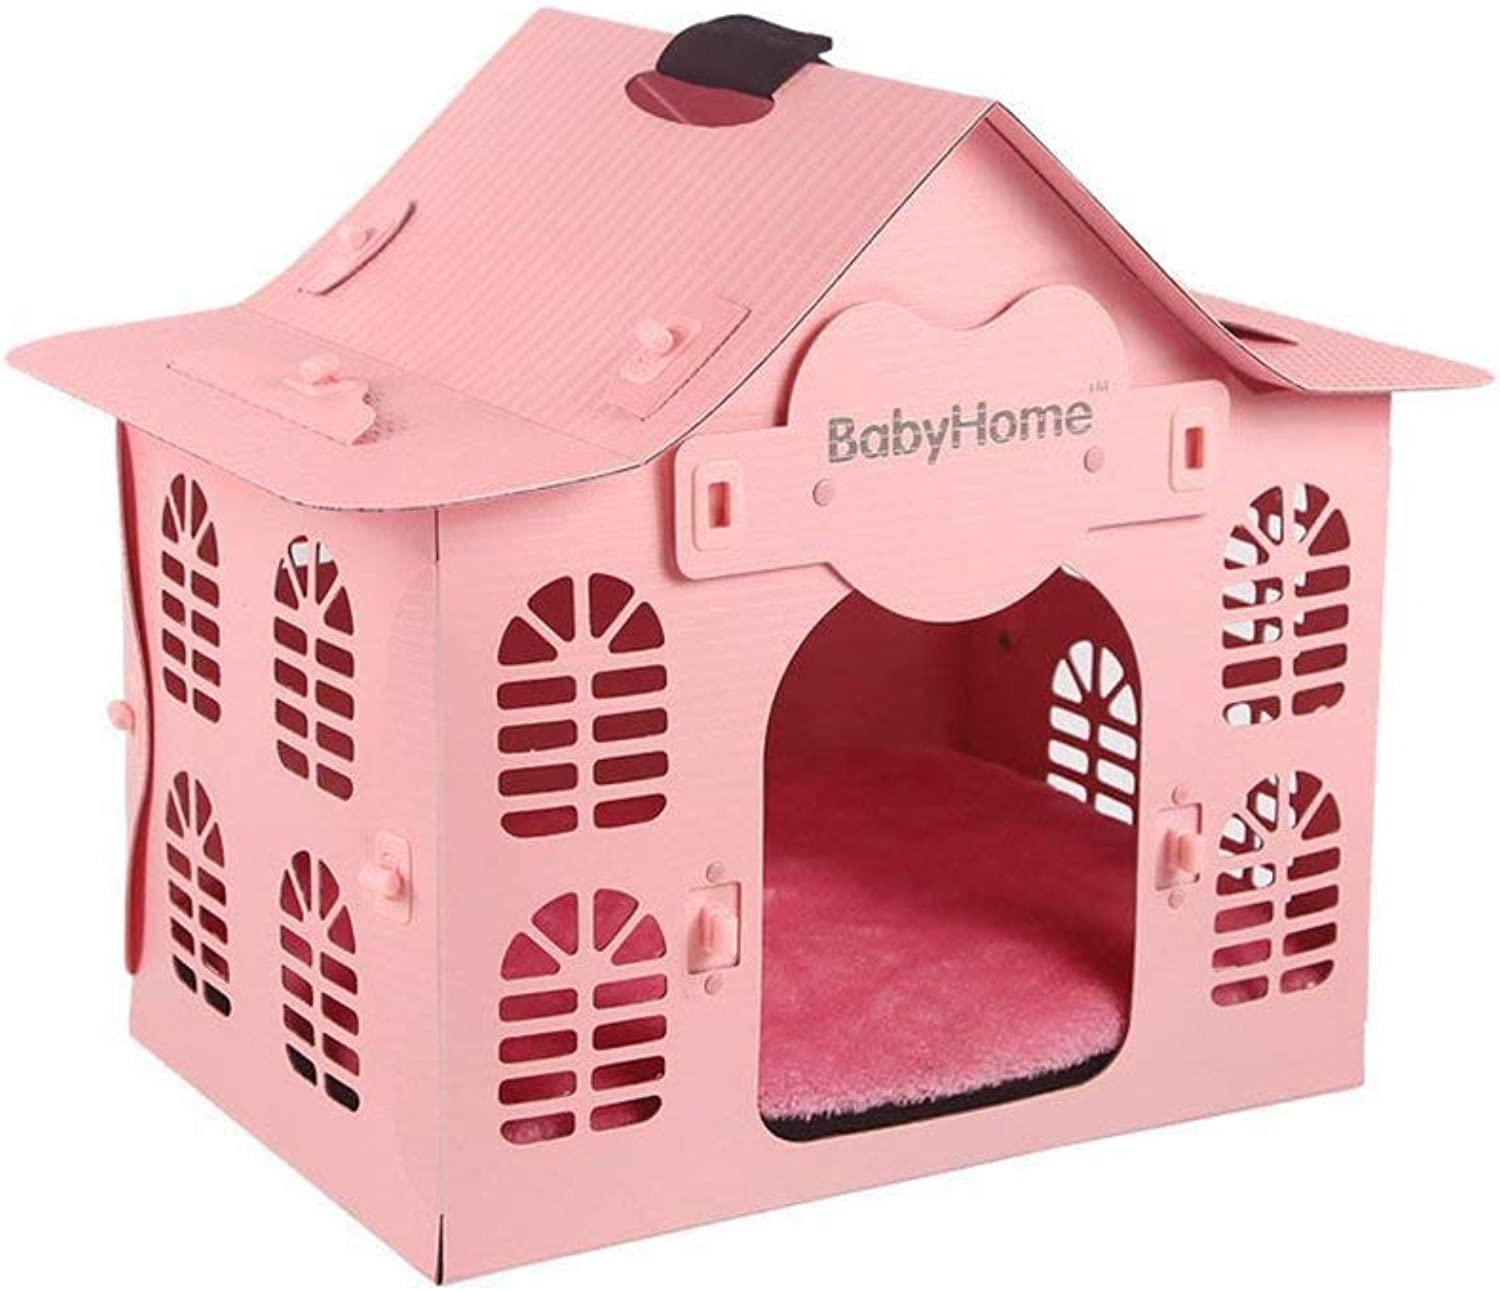 Pink Deluxe Breathable Ventilated Summer Plastic Dog Cat Puppy Pet House Kennel Removable Washable Bungalow Villa